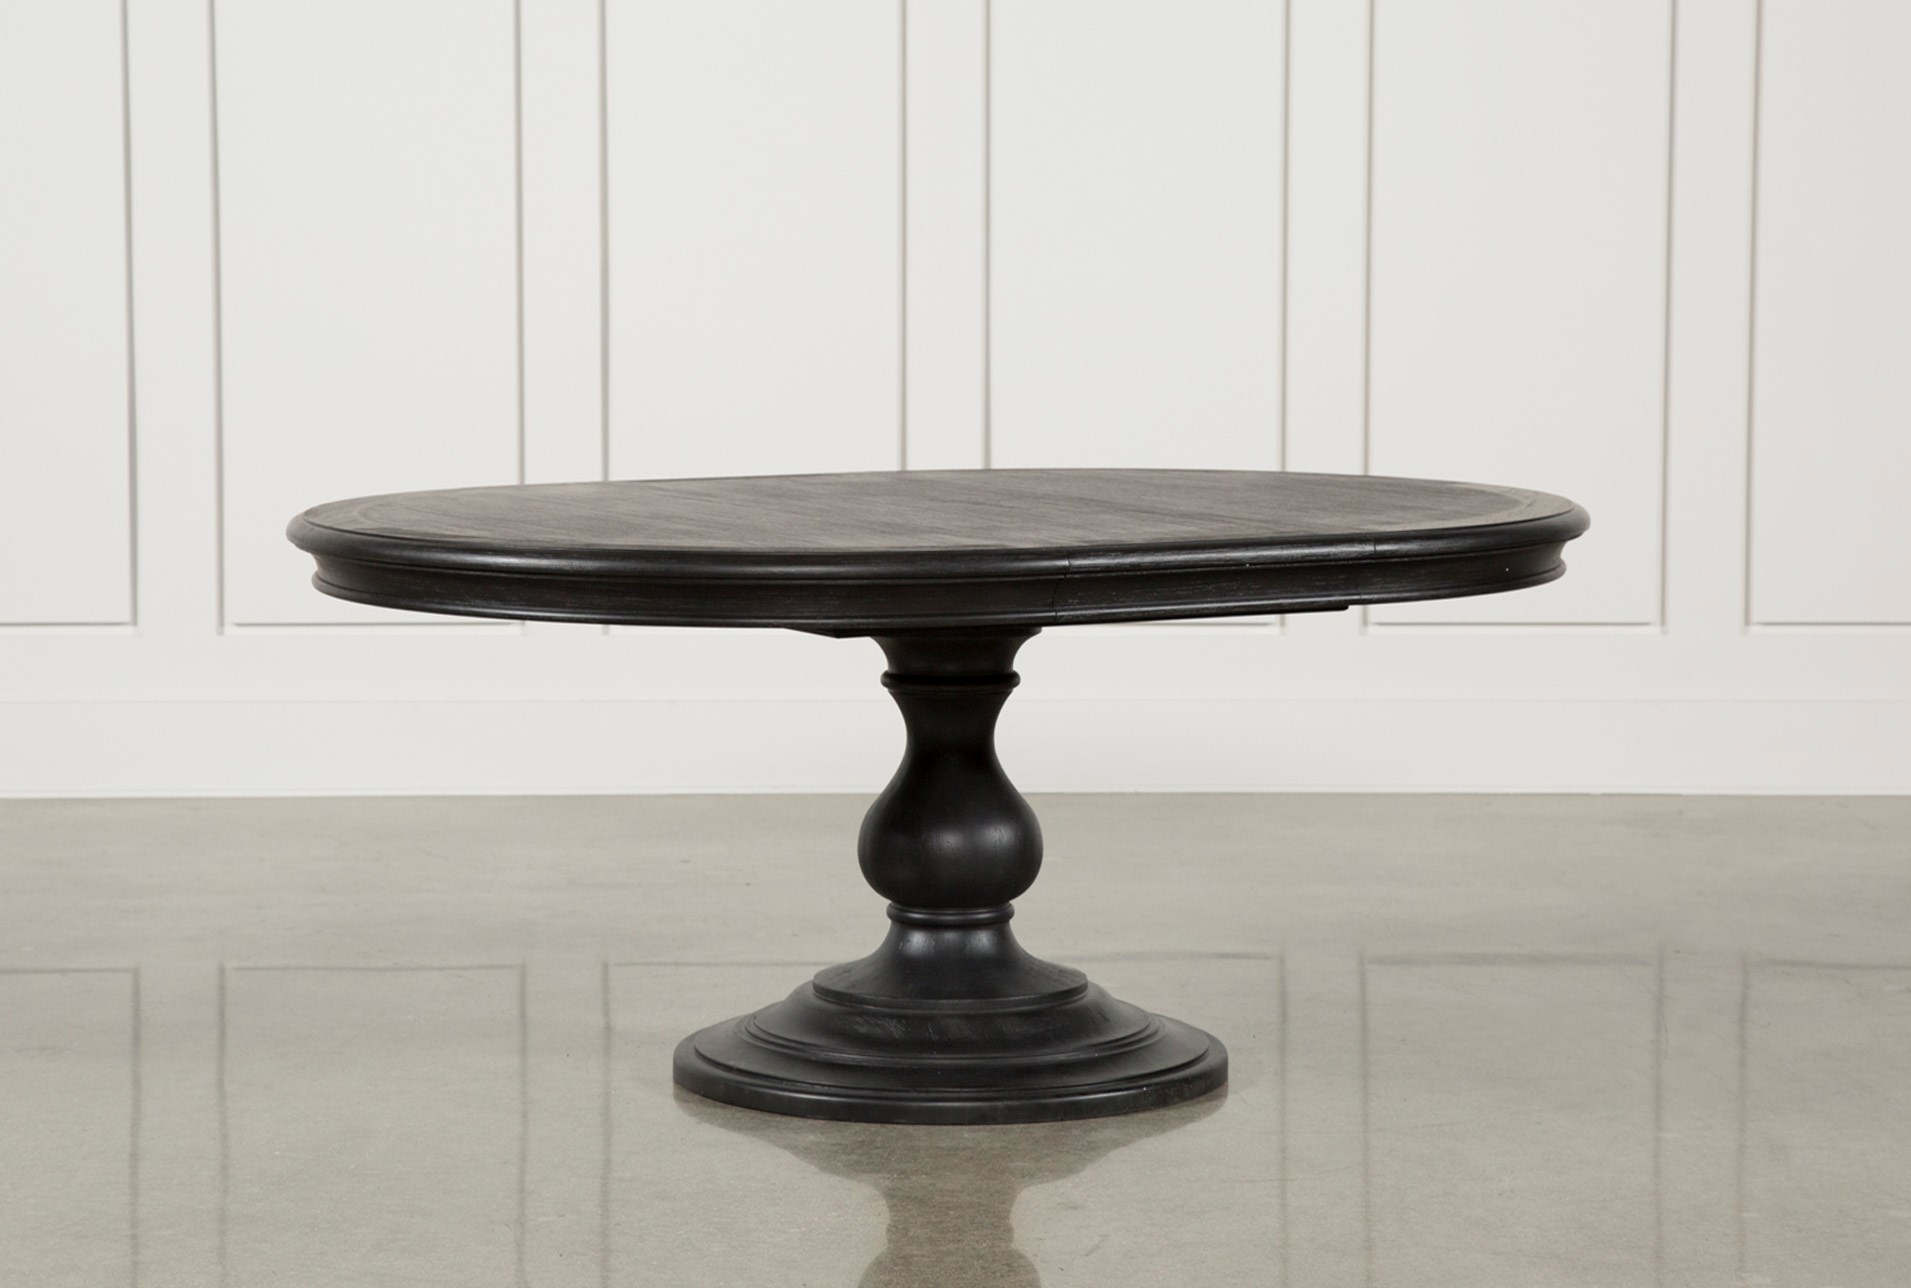 Caira black round dining table qty 1 has been successfully added to your cart